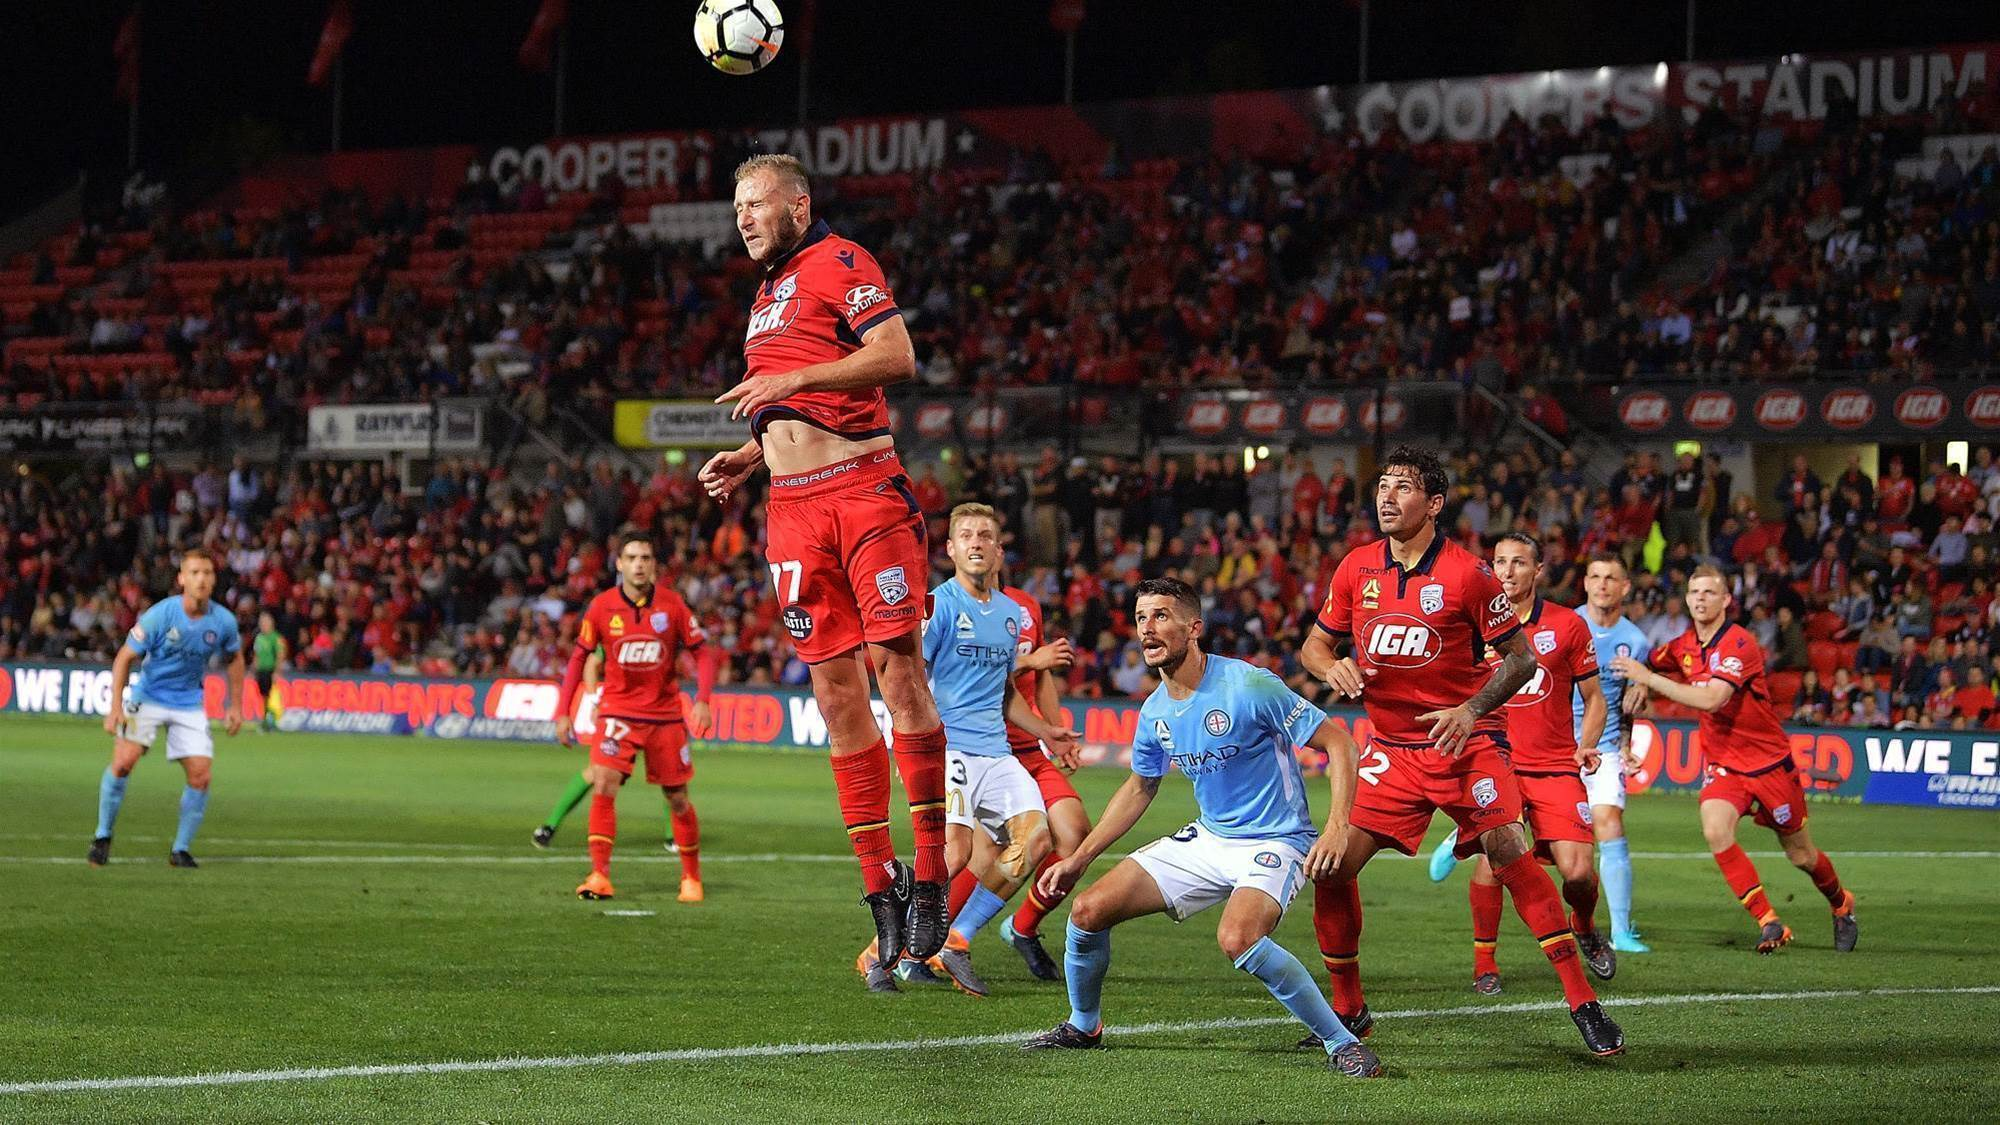 Adelaide United v Melbourne City player ratings